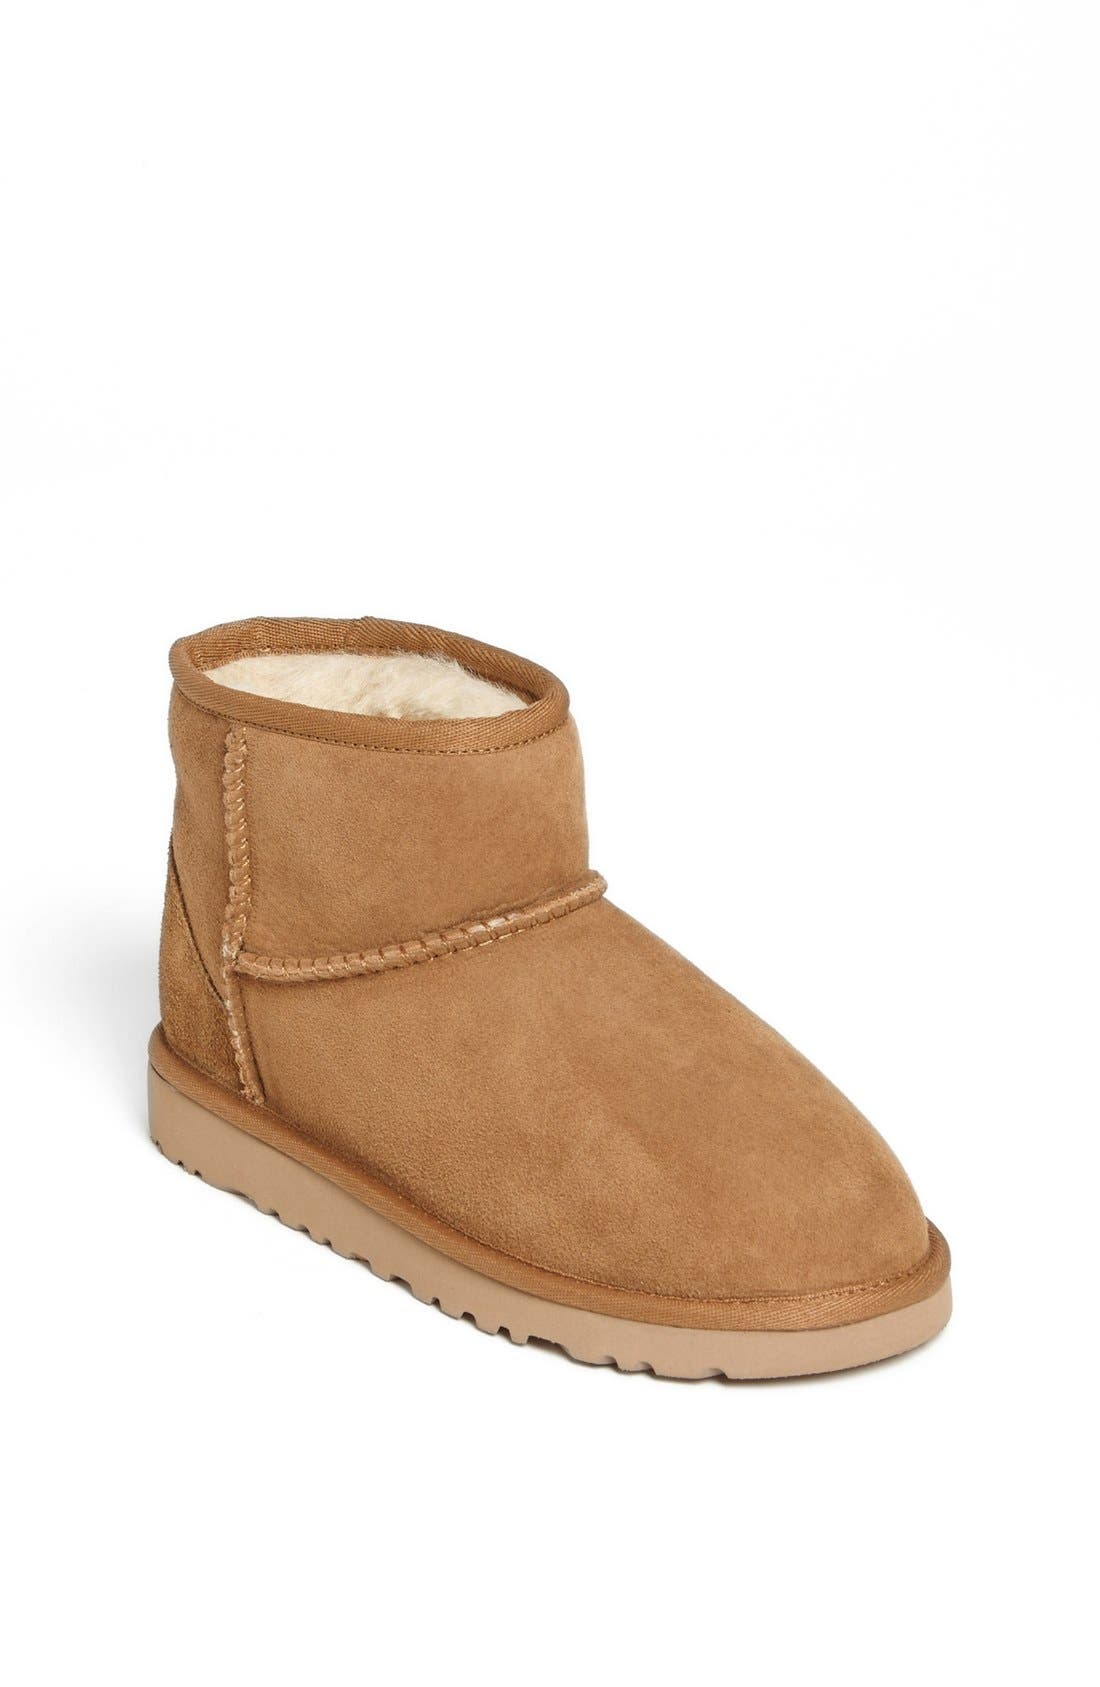 Alternate Image 1 Selected - UGG® Australia 'Classic Mini' Boot (Little Kid & Big Kid)